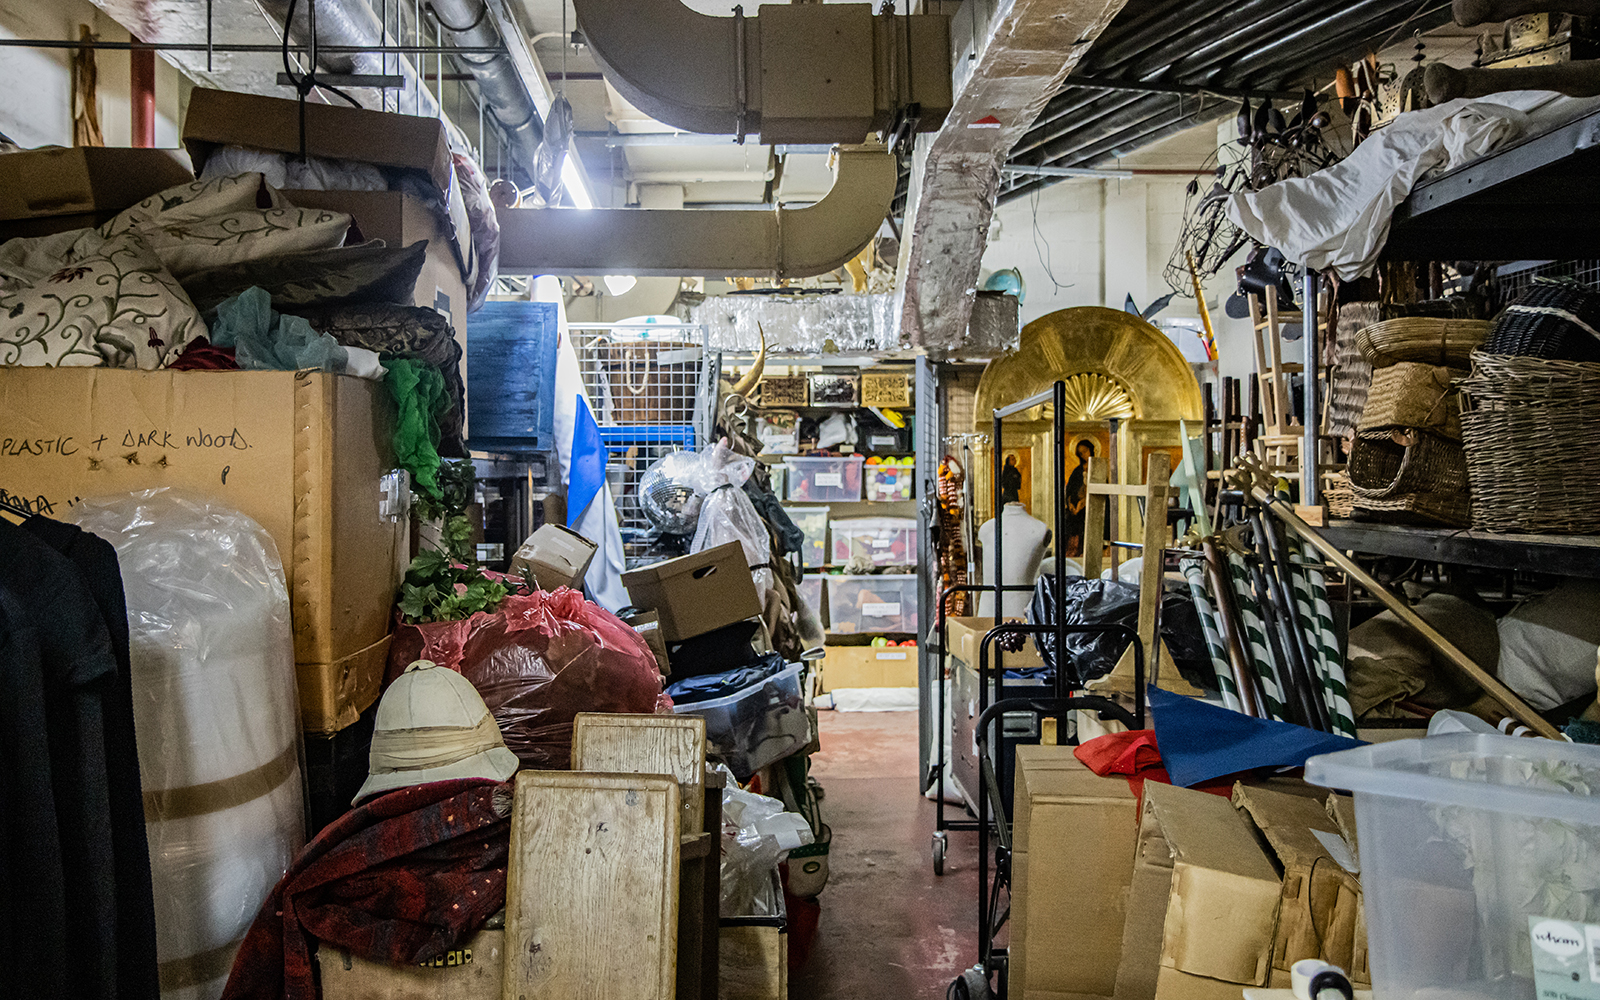 A basement heaving with stage props and costumes